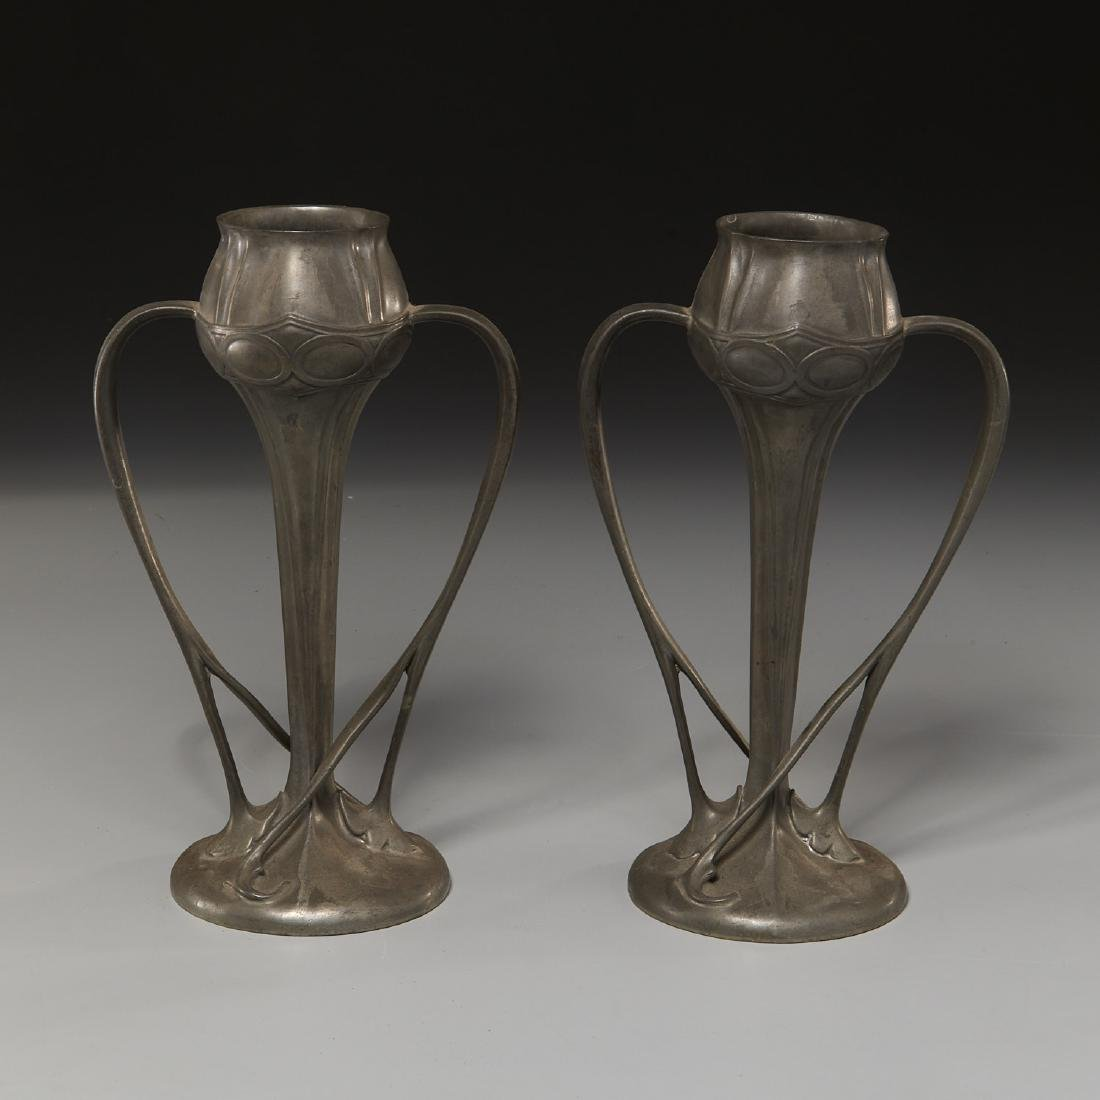 Archibald Knox and WMF Art Nouveau tablewares - 7